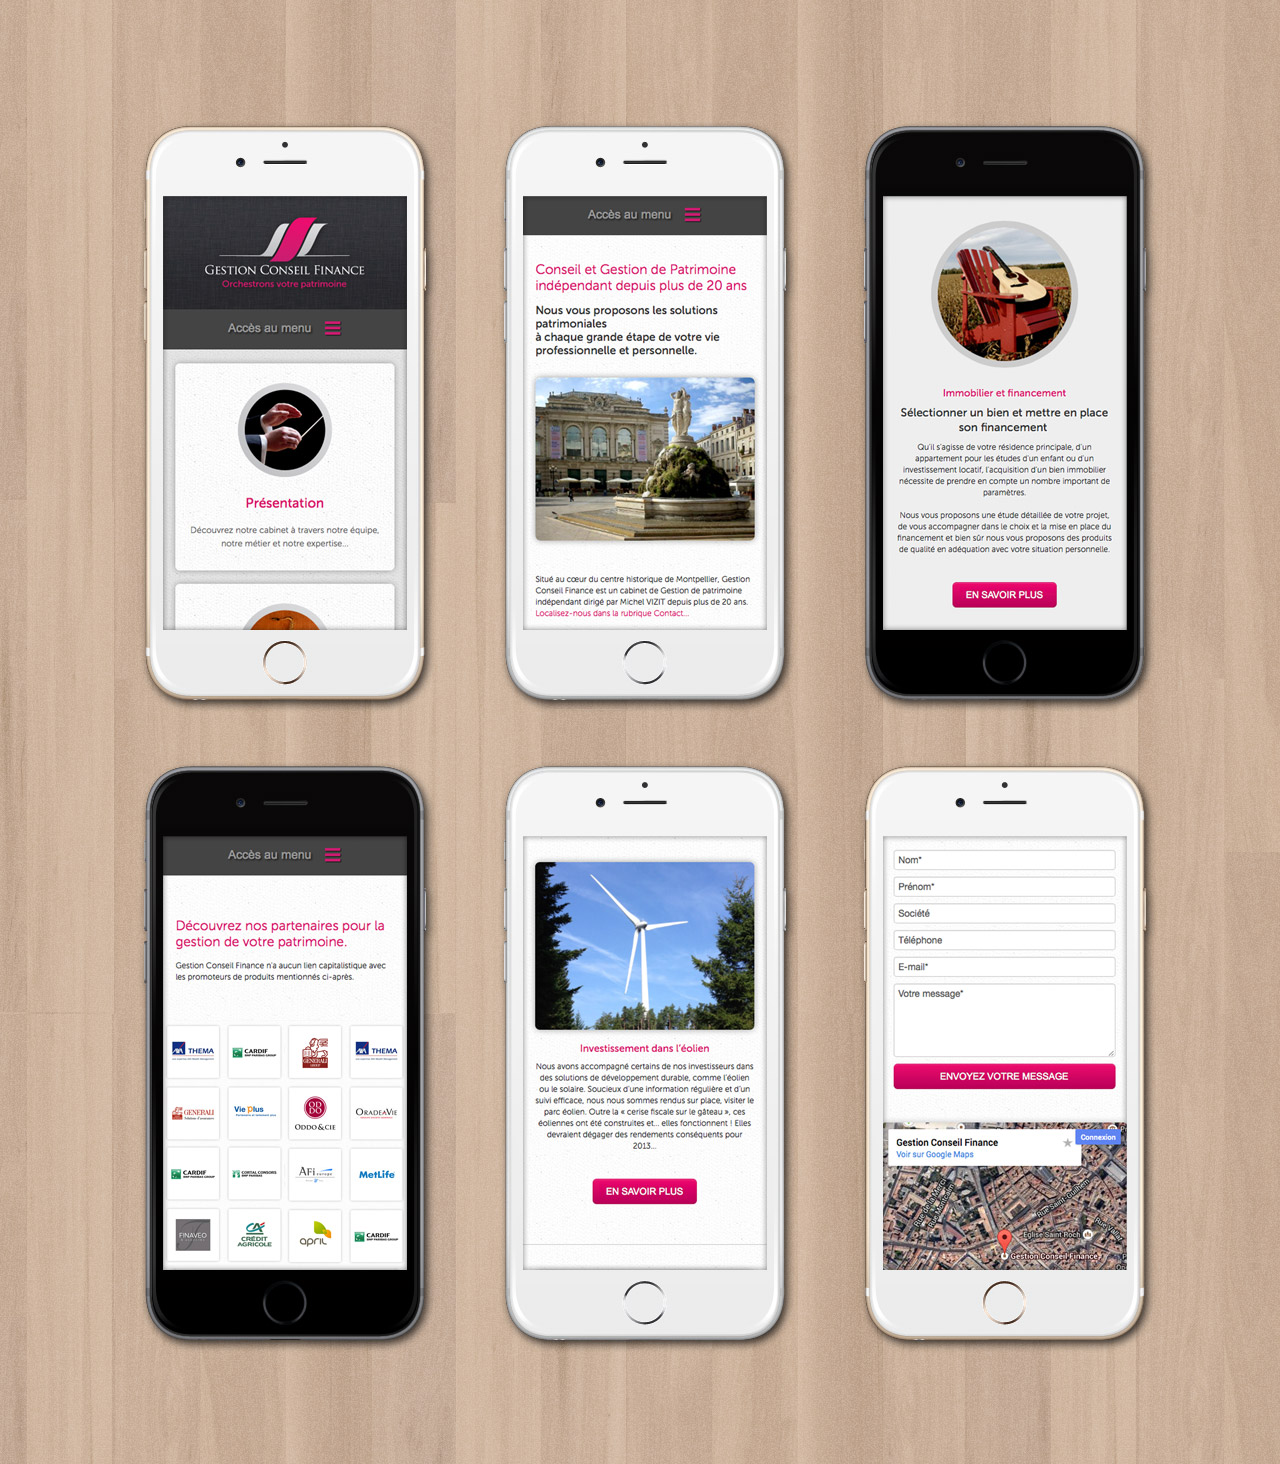 gestion-conseil-finance-site-mobile-responsive-design-creation-communication-caconcept-alexis-cretin-graphiste